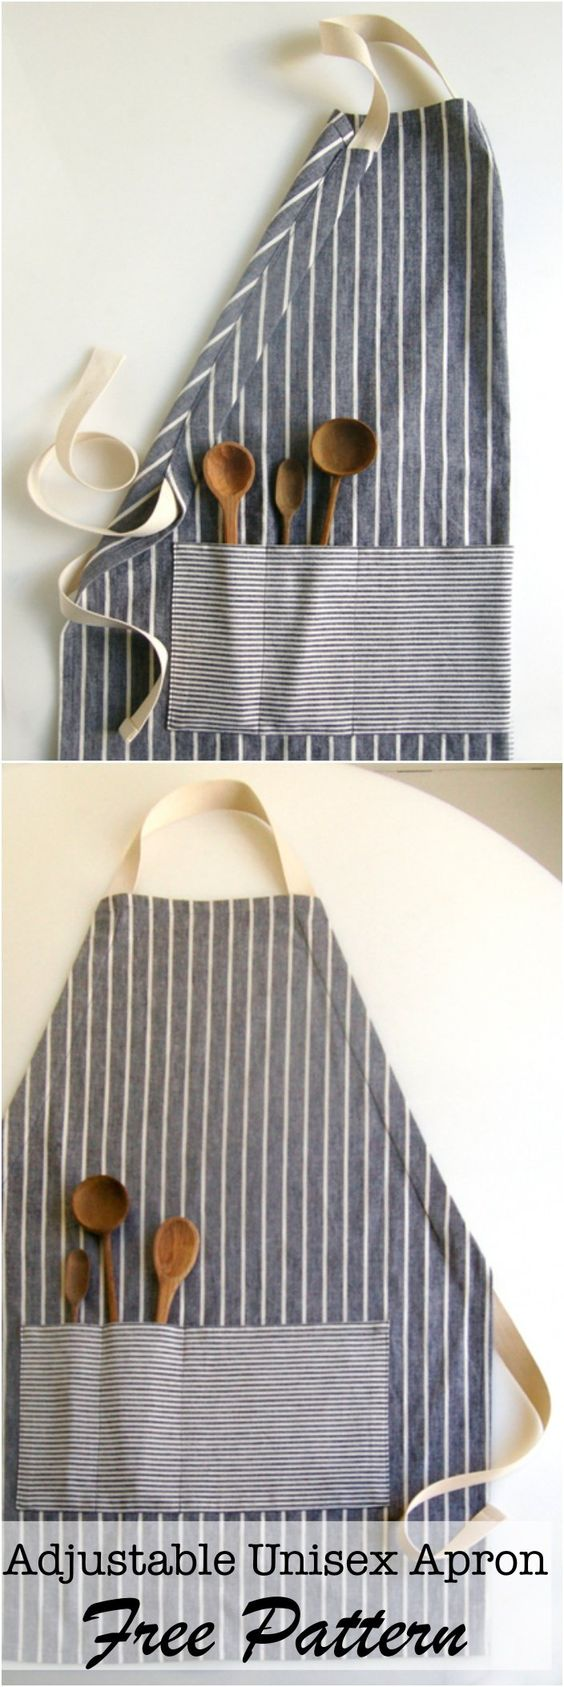 DIY adjustable apron over